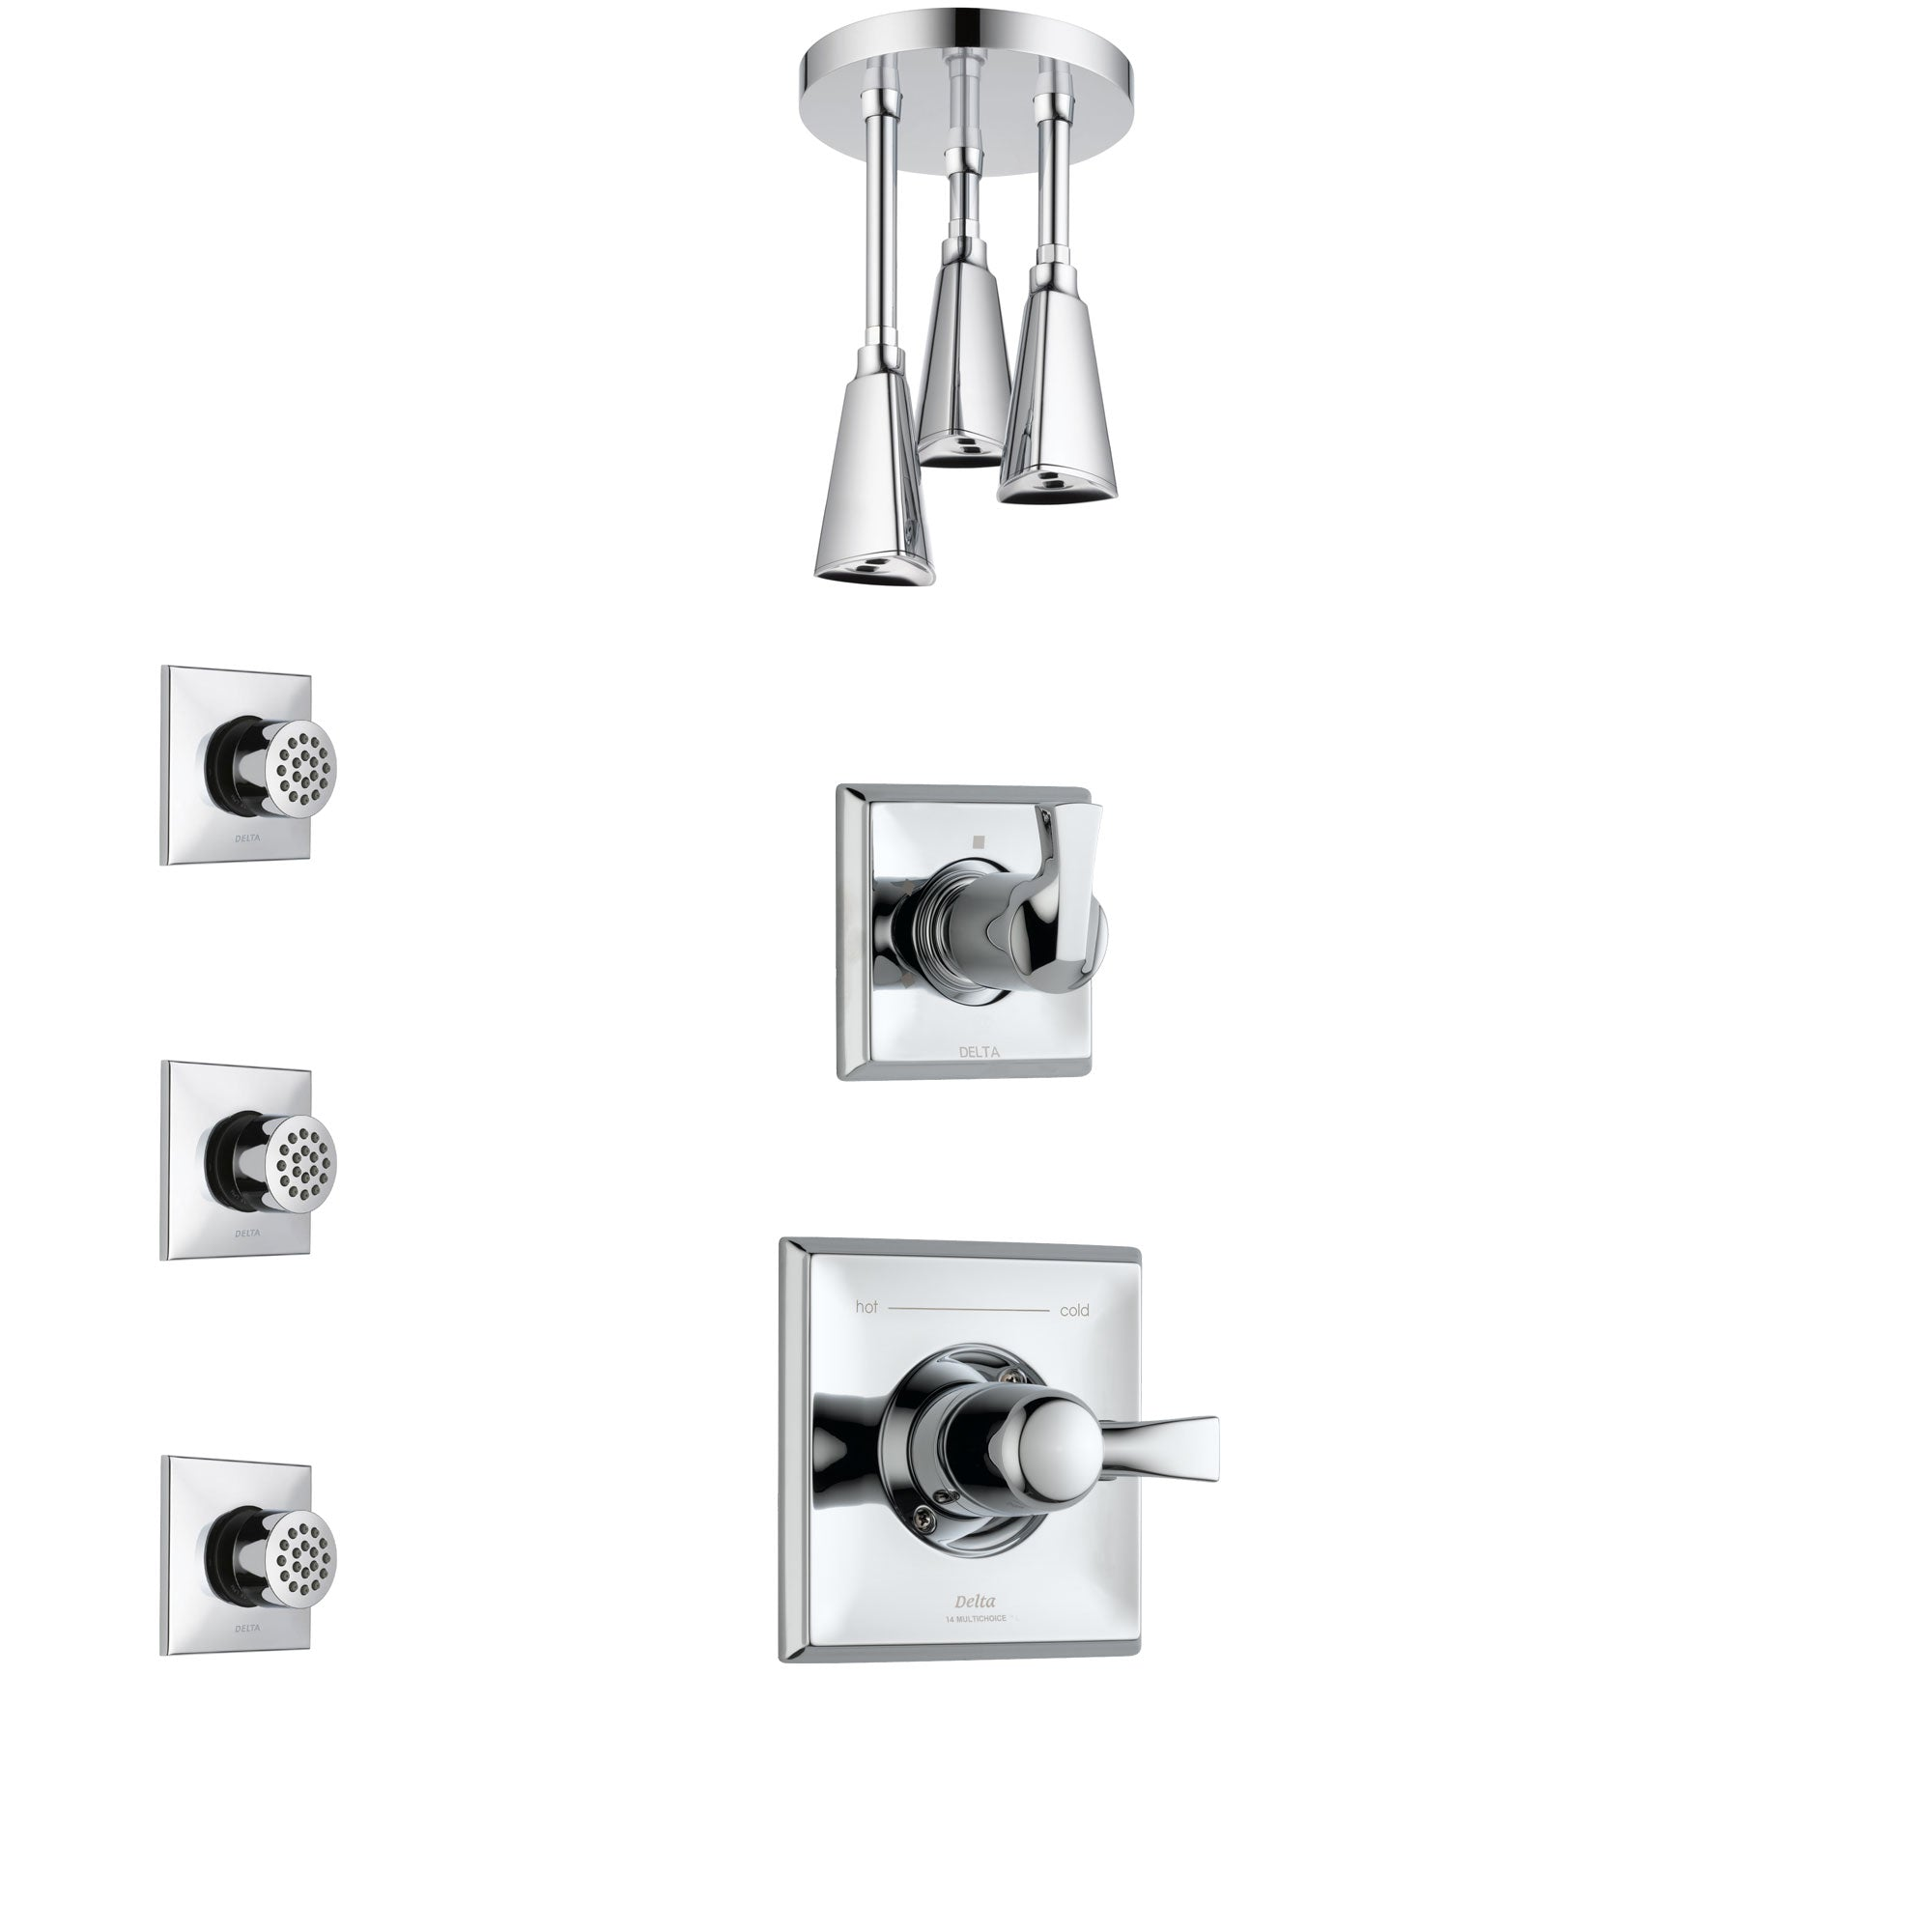 Delta Dryden Chrome Finish Shower System with Control Handle, 3-Setting Diverter, Ceiling Mount Showerhead, and 3 Body Sprays SS14513